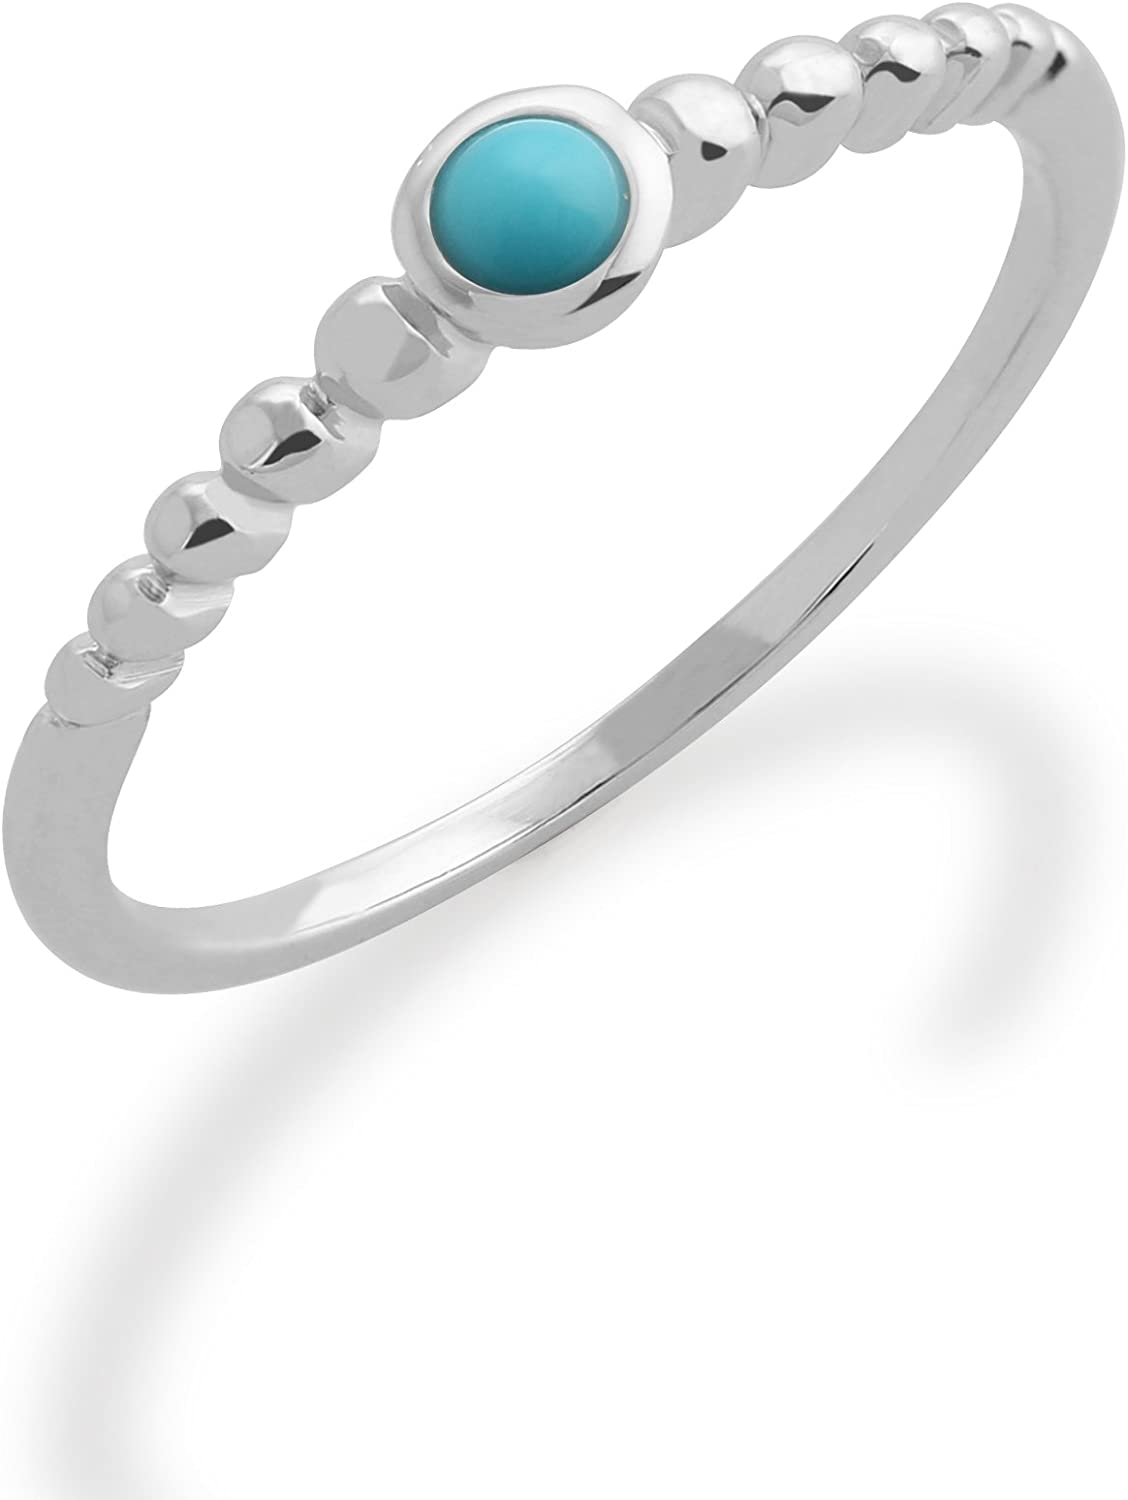 Gemondo Turquoise Ring wholesale 925 Sterling Silver Sta Recommended 0.15ct